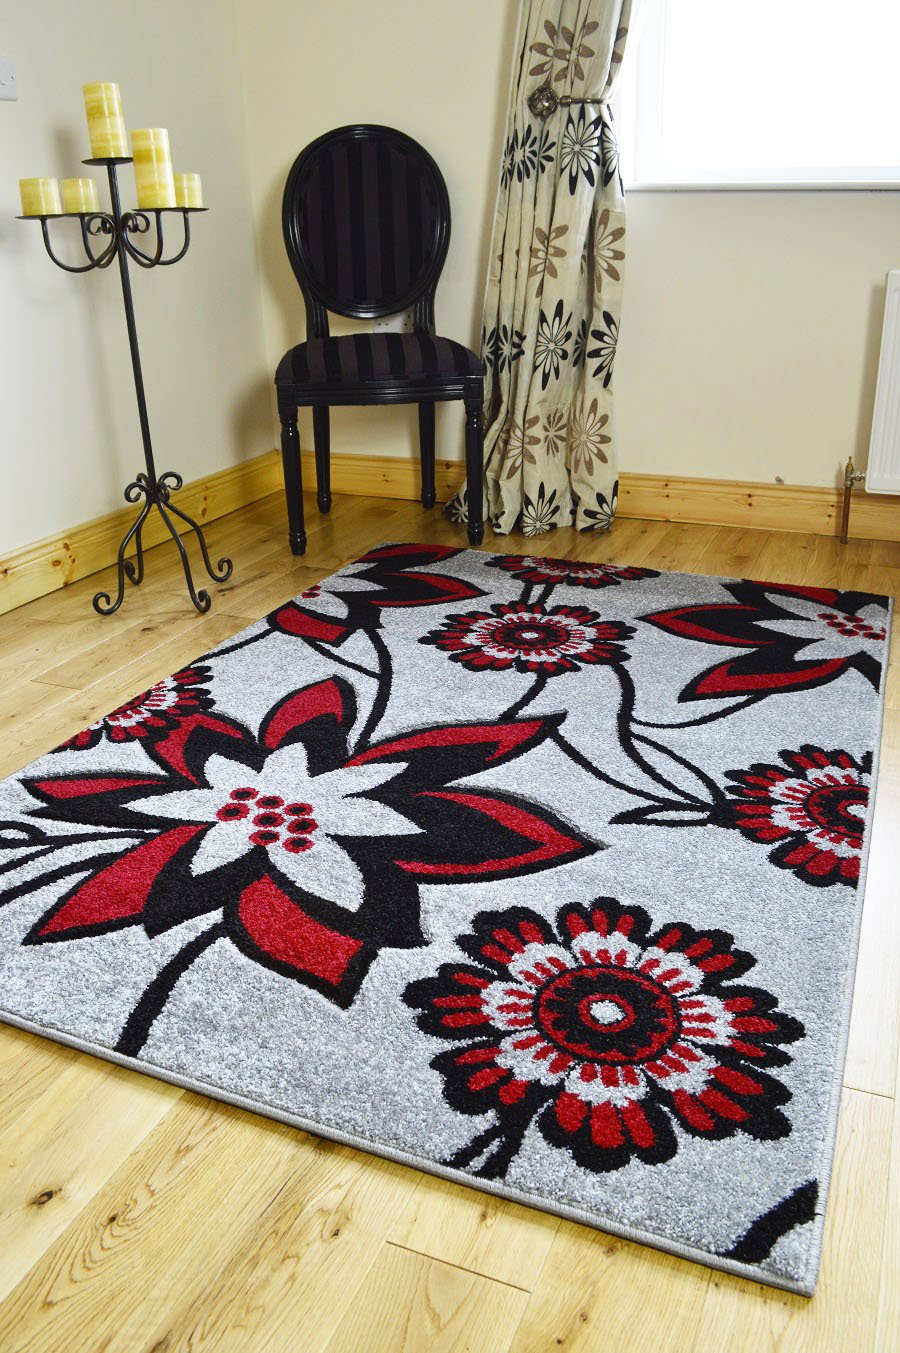 *5 sizes*NEW SMALL MEDIUM XX LARGE MODERN RED BLACK SILVER CARVED QUALITY HALL RUNNER LIVING ROOM MAT CHEAP BEDROOM OFFICE SOFT RUG (200 X 290 CMS)       Customer reviews